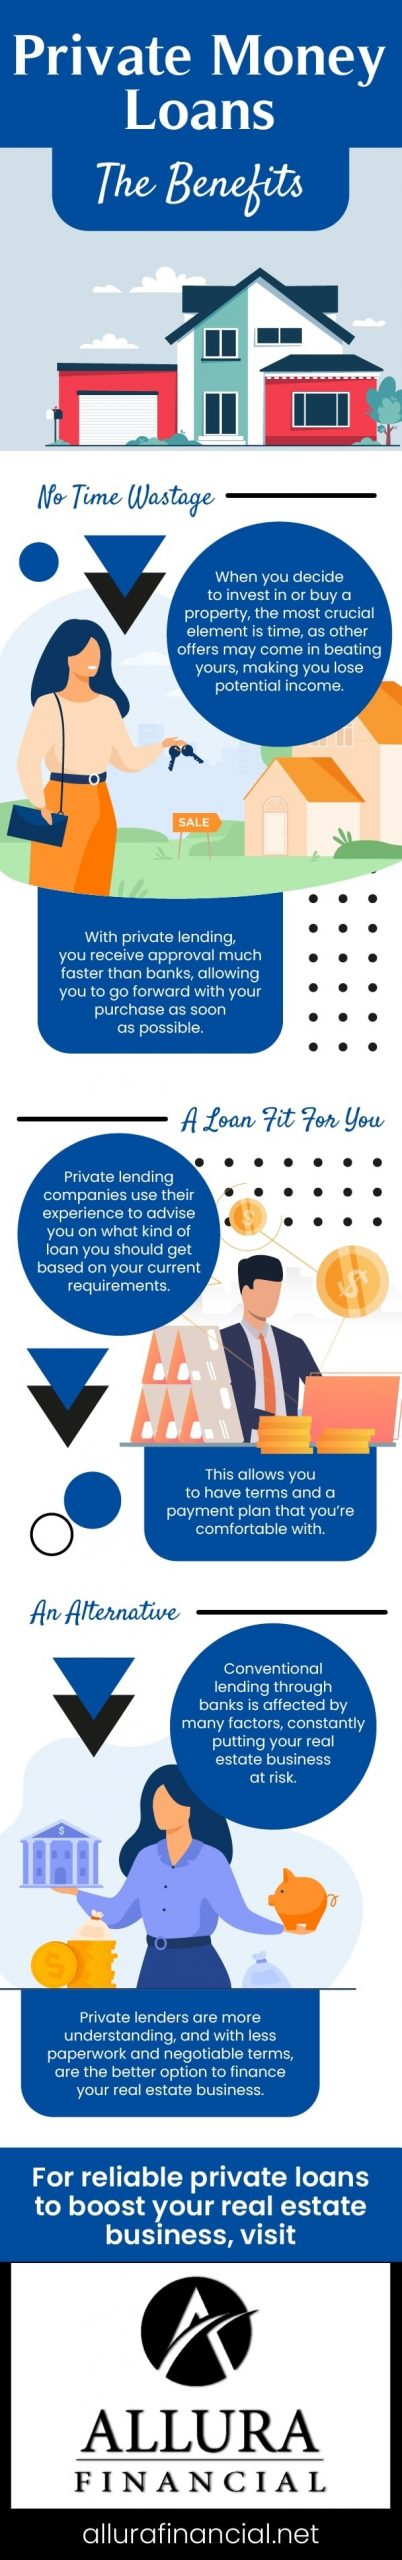 Private Money Loans Benefits